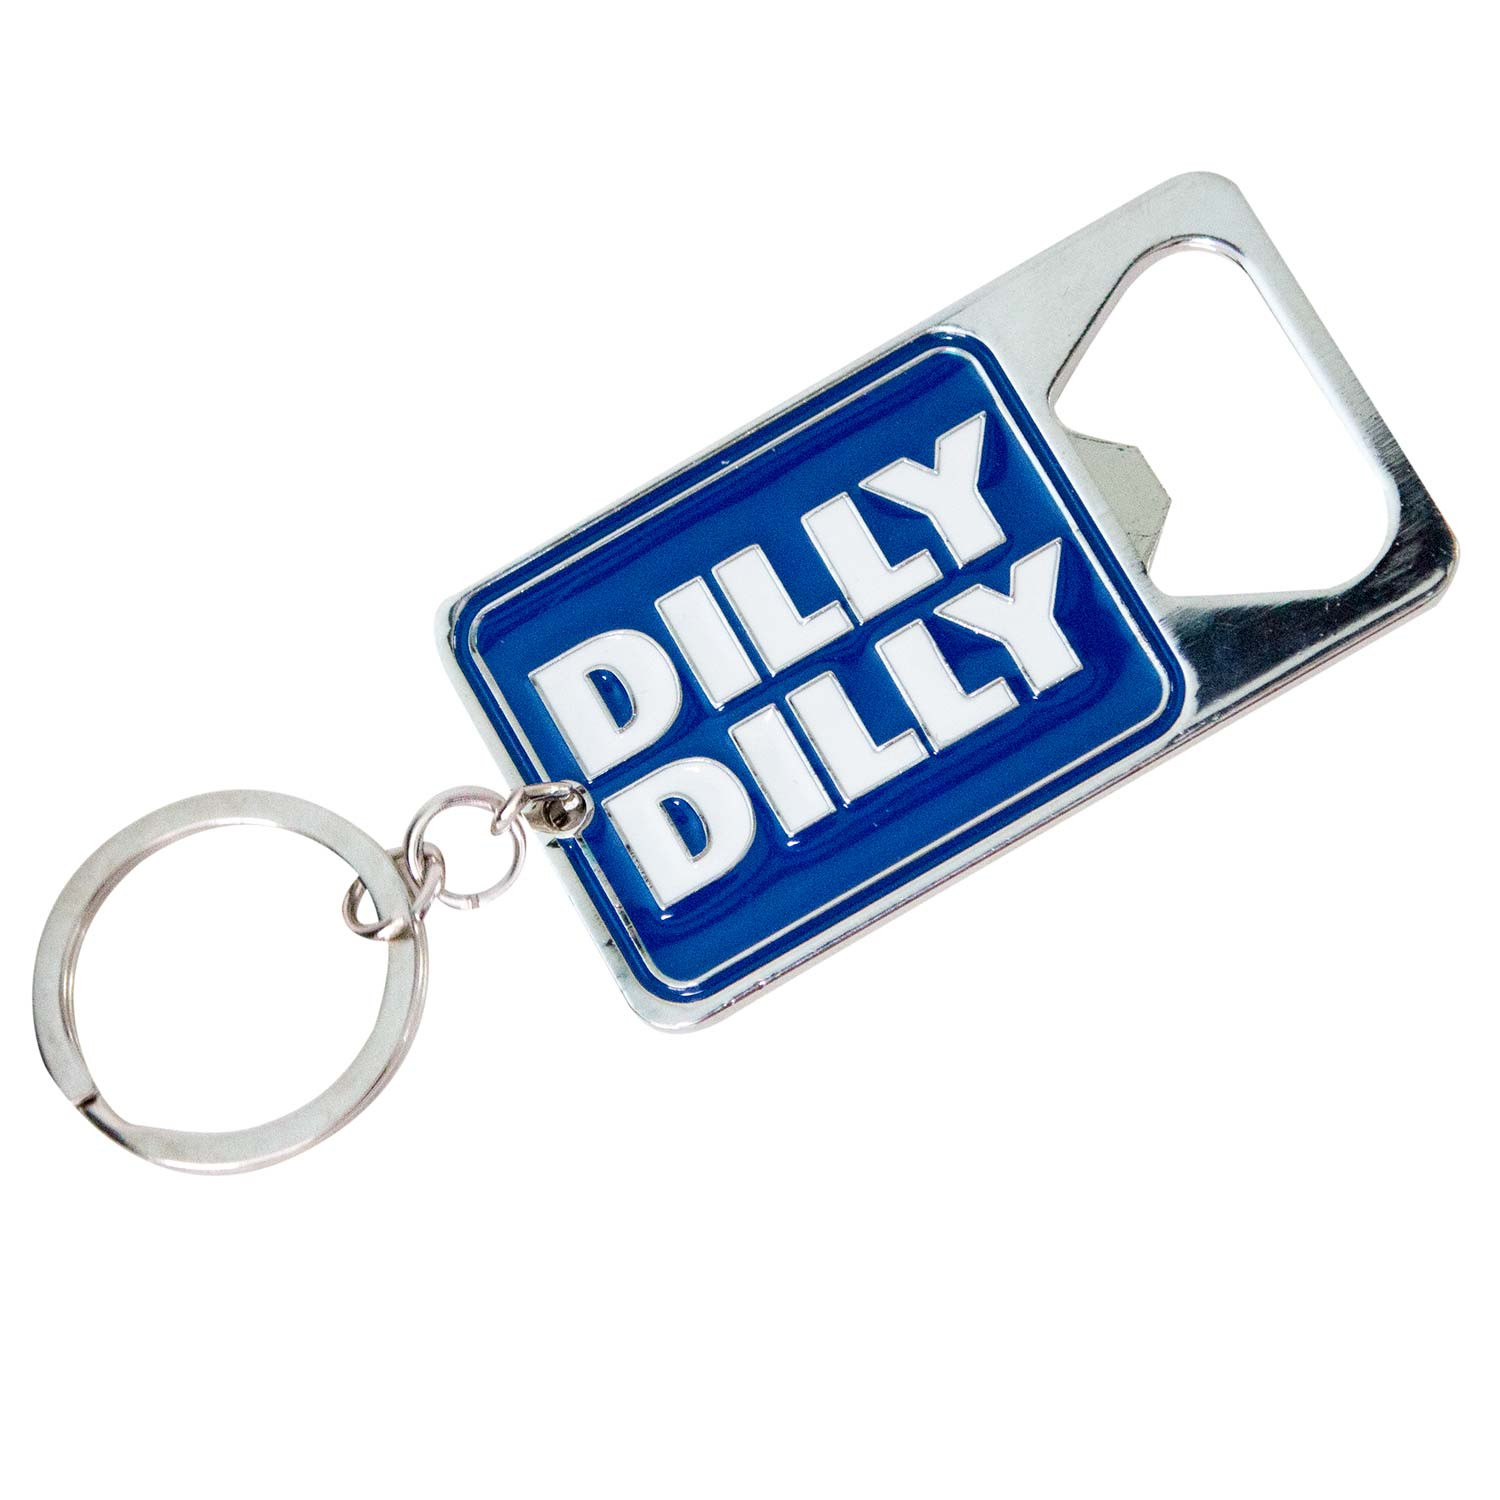 Bud Light Dilly Dilly Metallic Bottle Opener Keychain